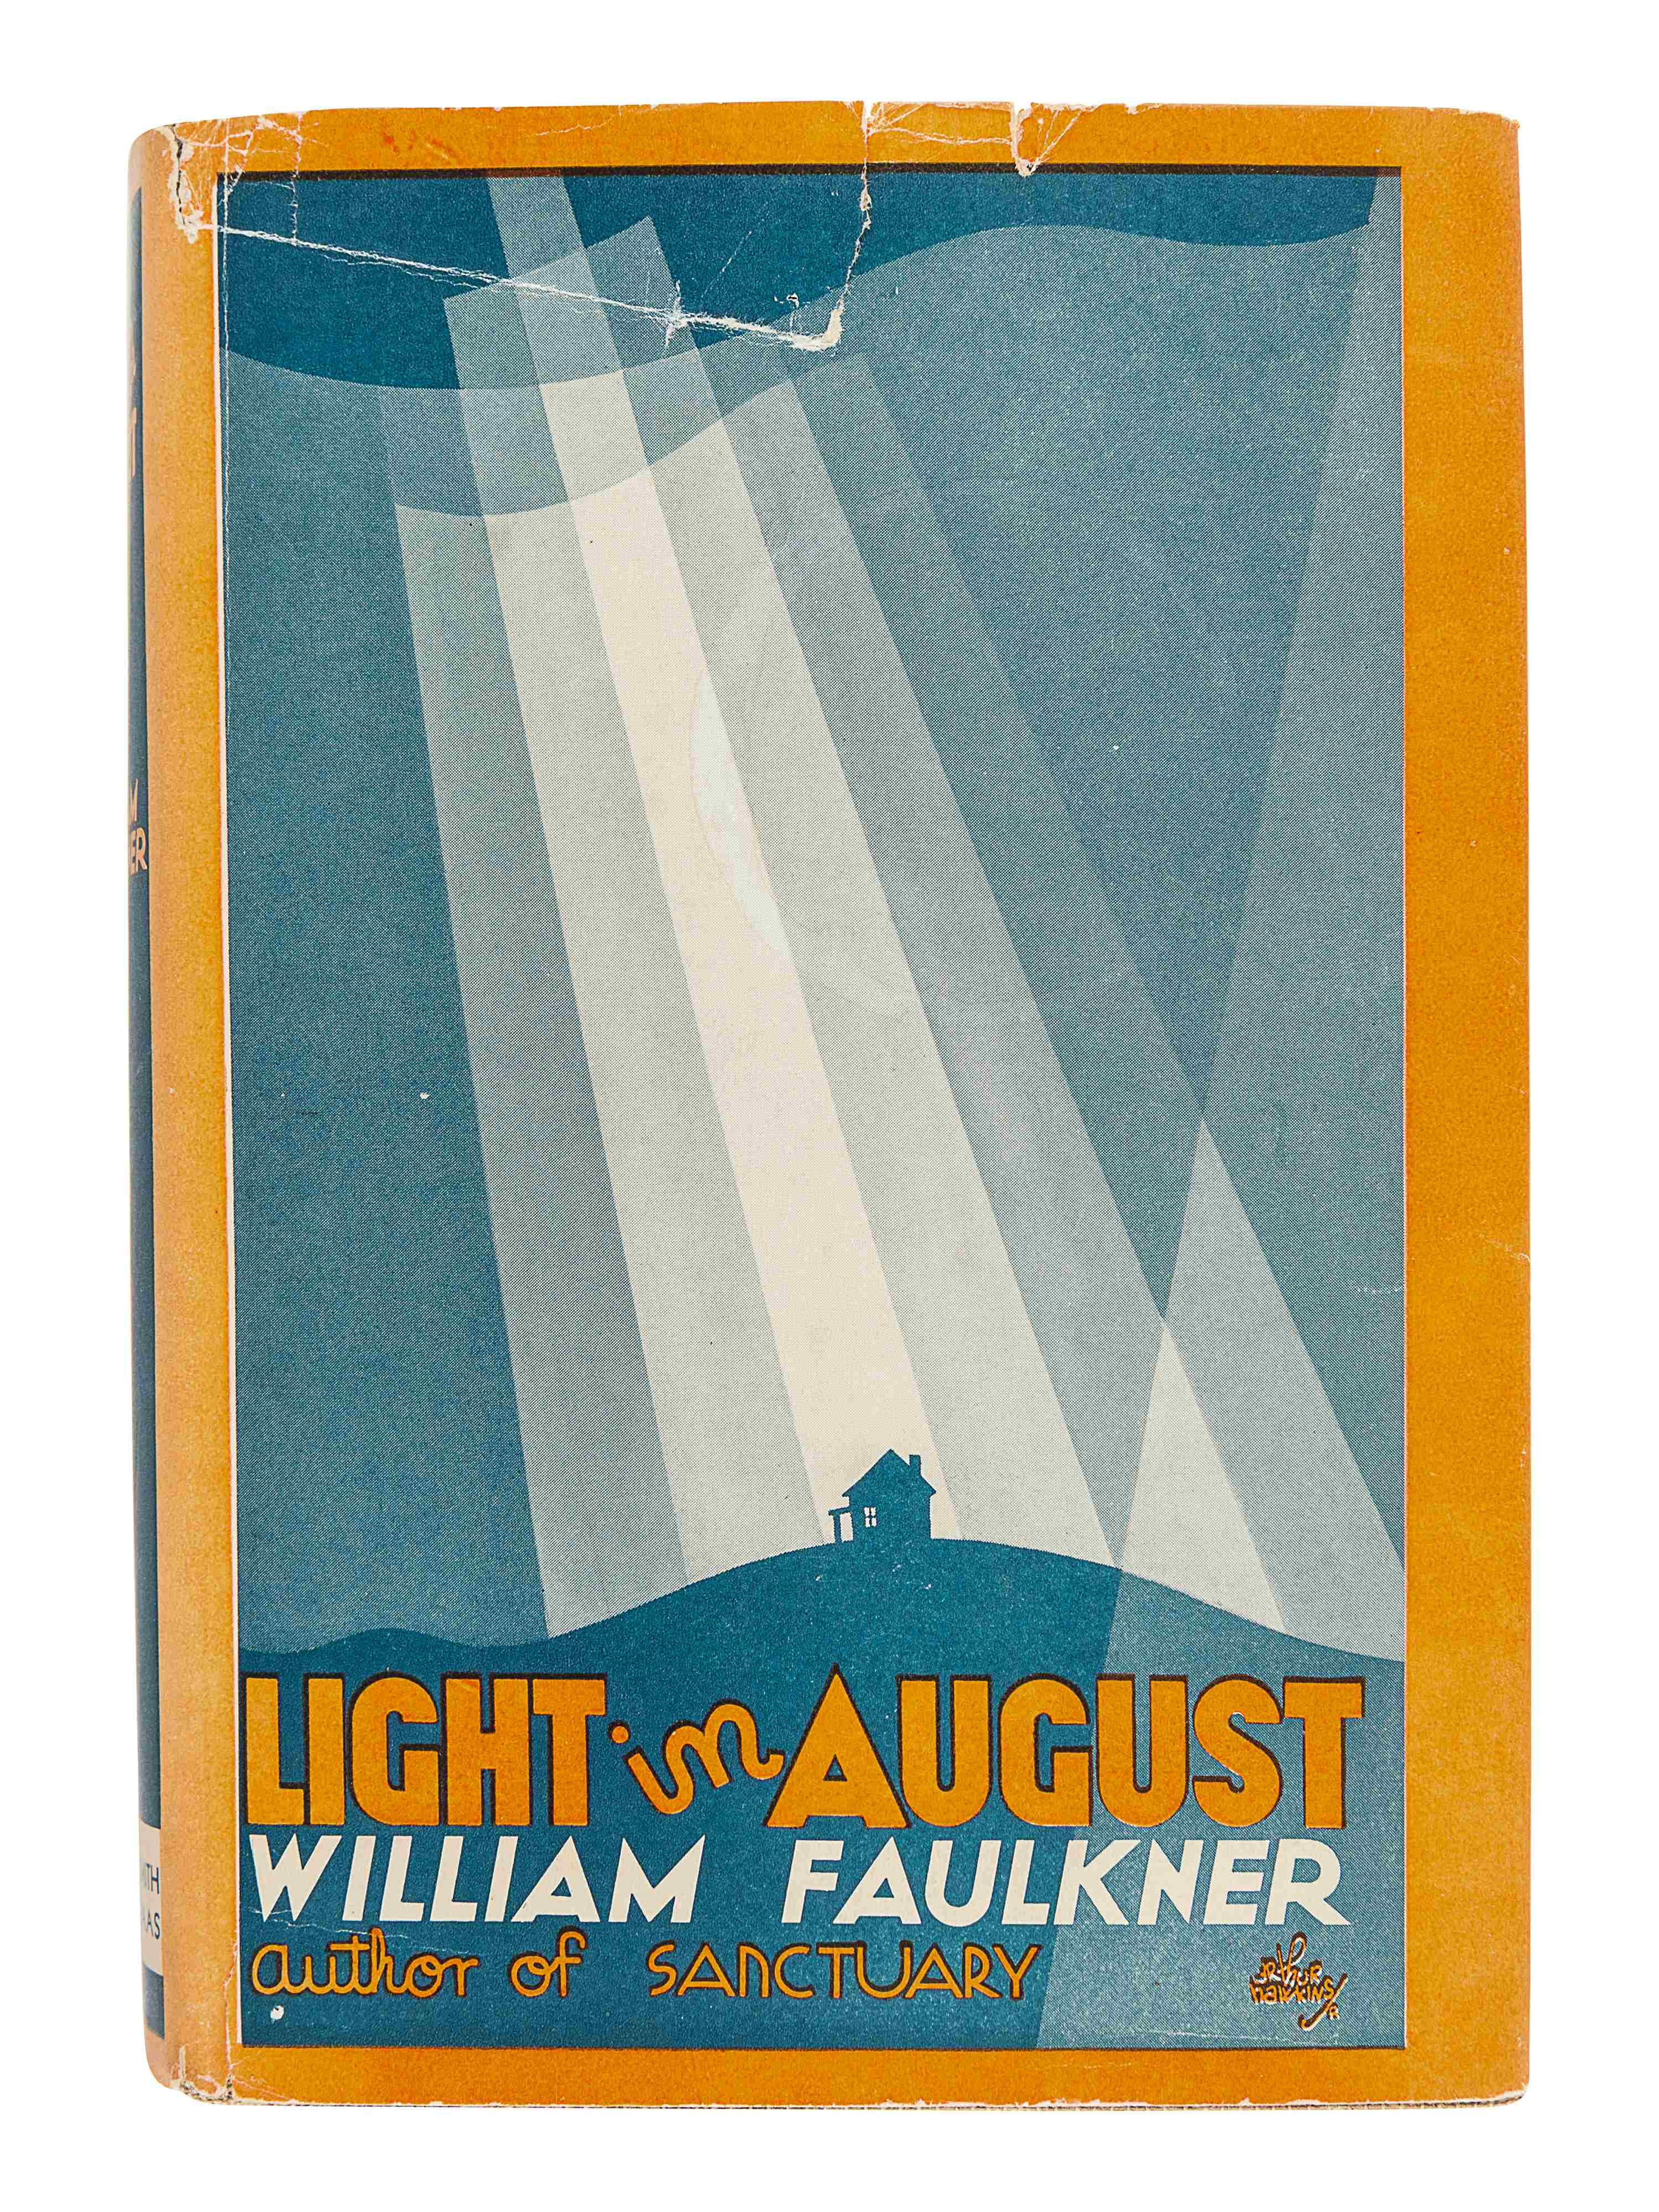 FAULKNER, William (1897-1962). Light in August. New York: Harrison Smith and Robert Haas, 1932.